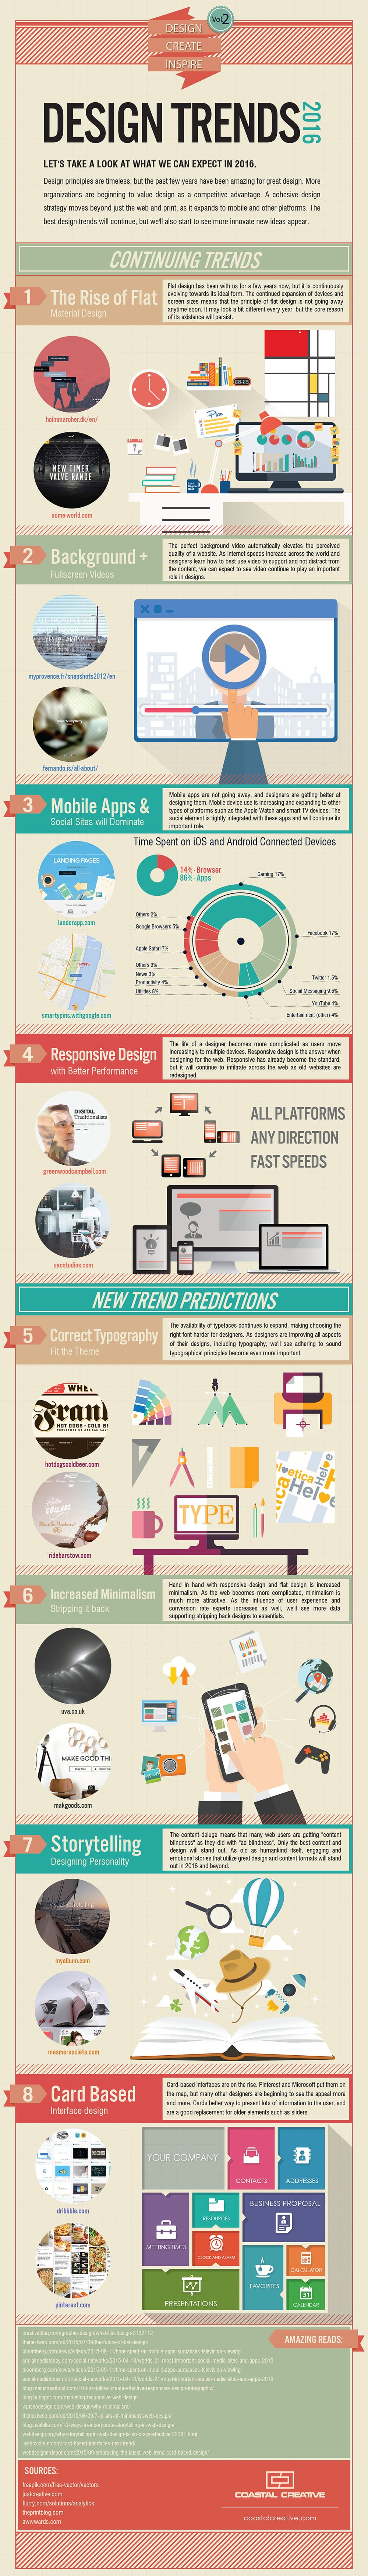 Visual Design Trends